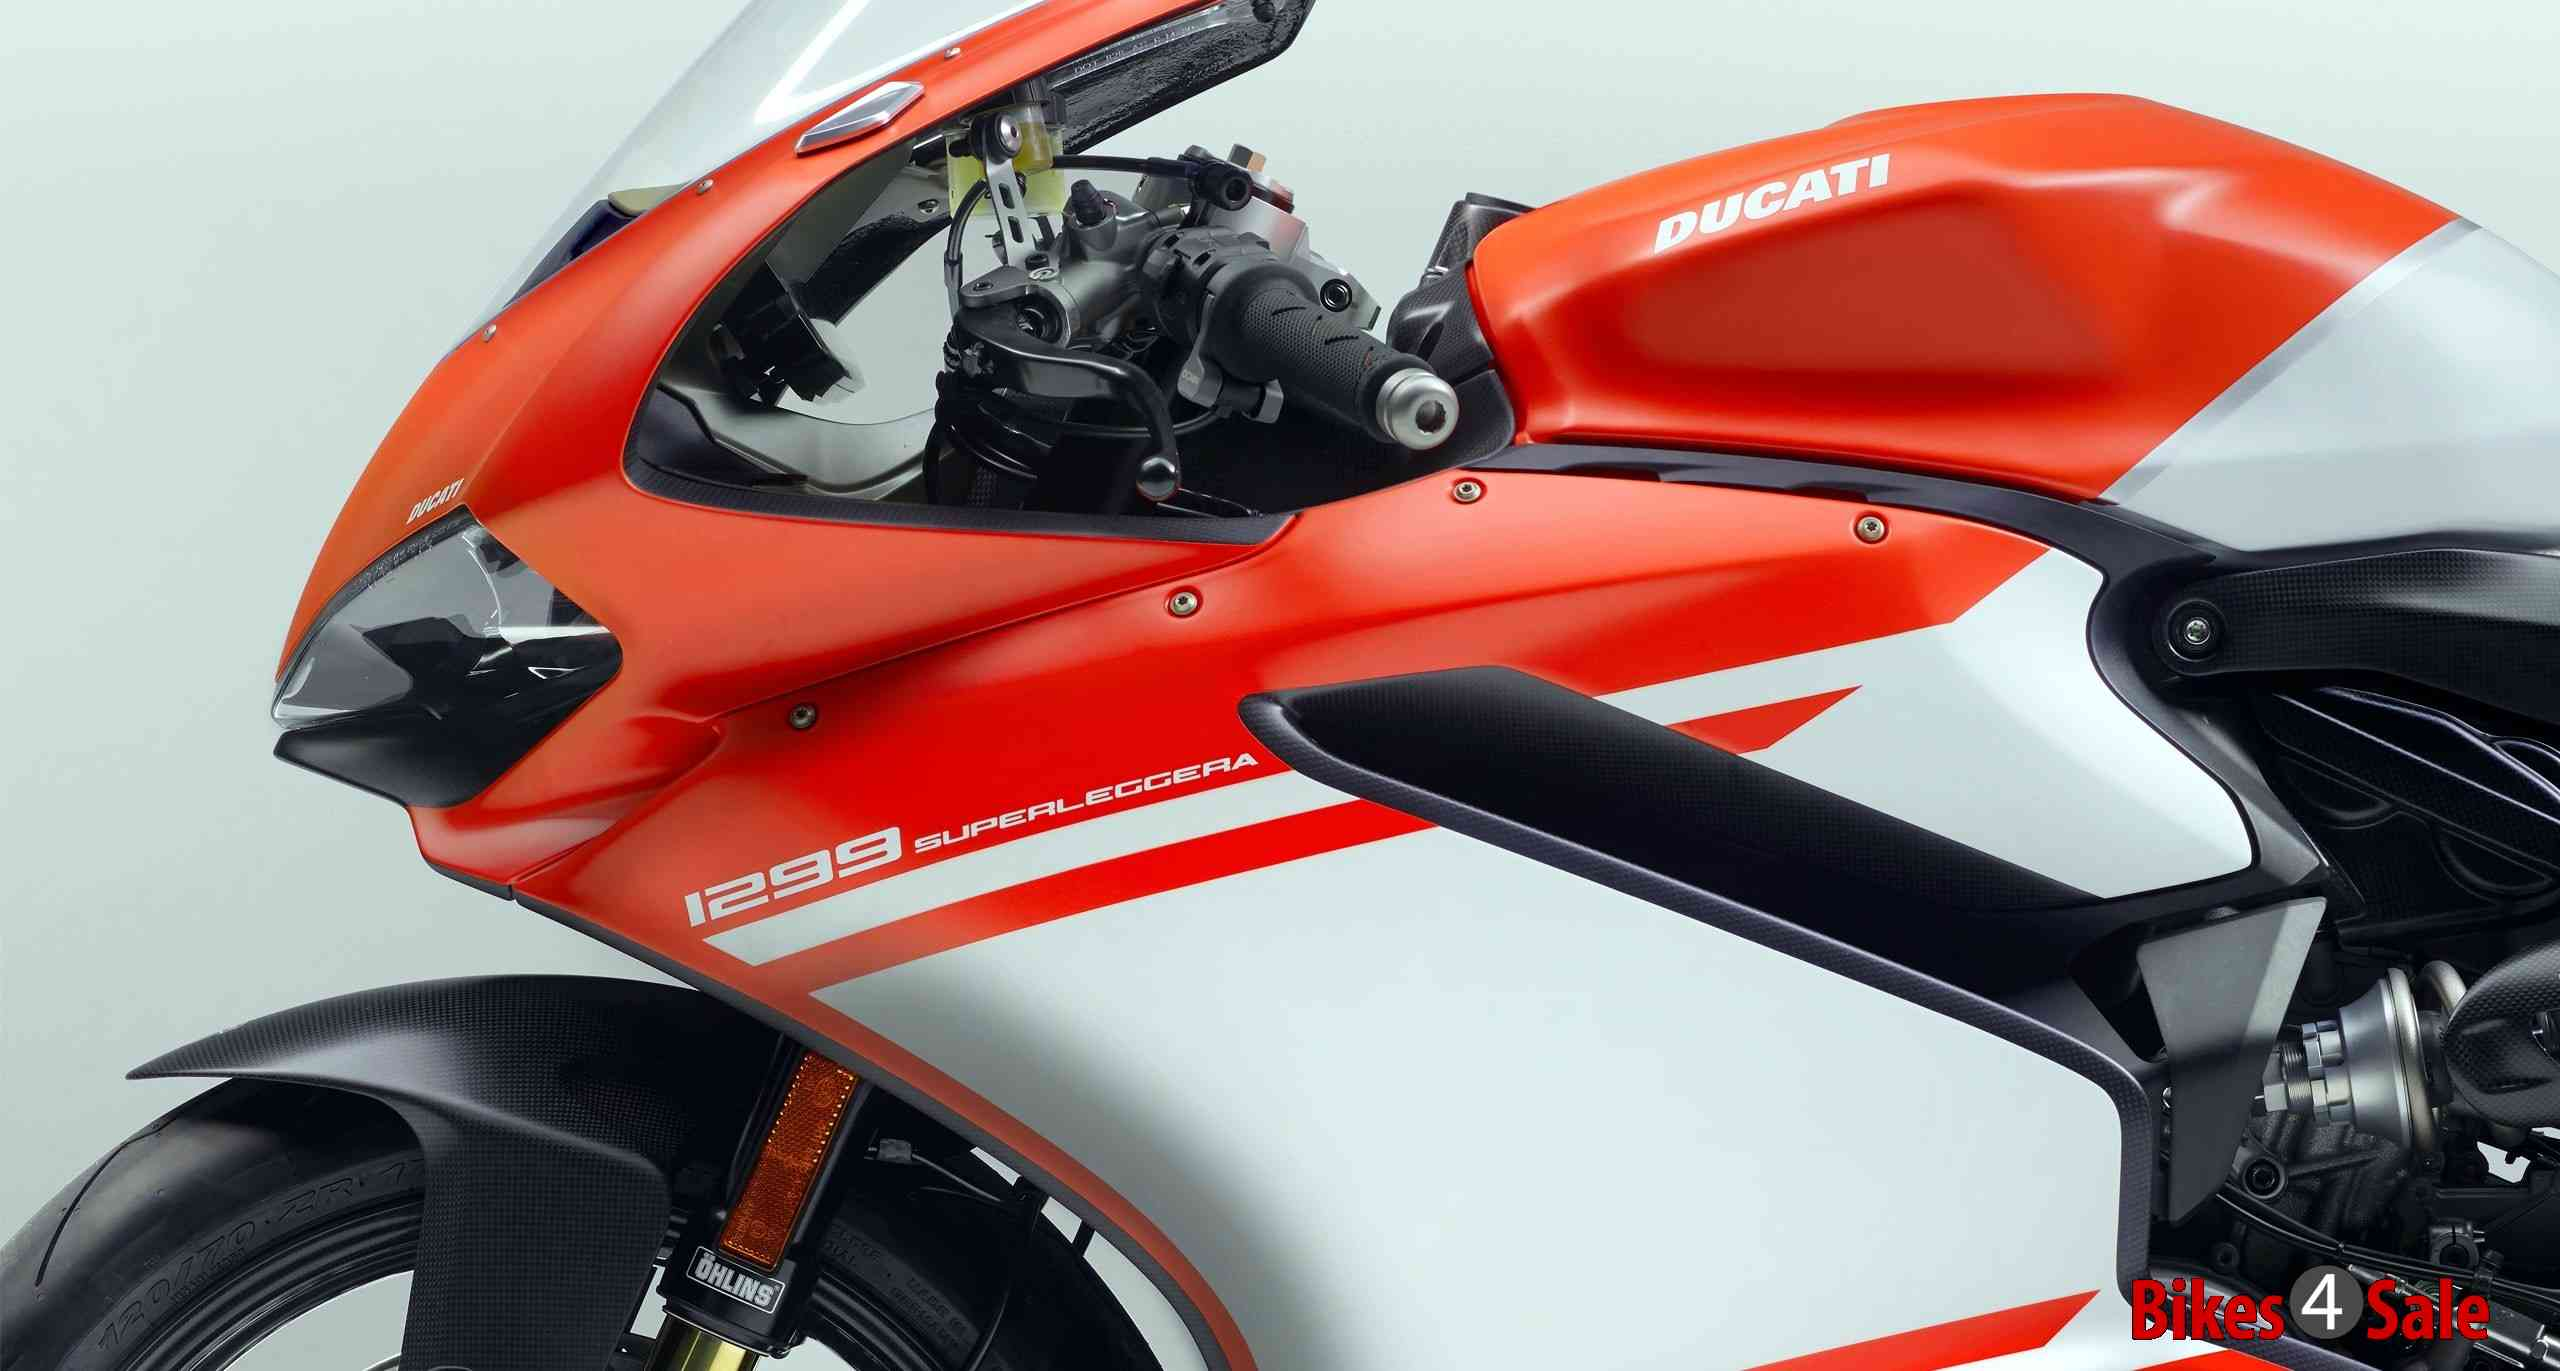 top 5 expensive bikes in india - bikes4sale